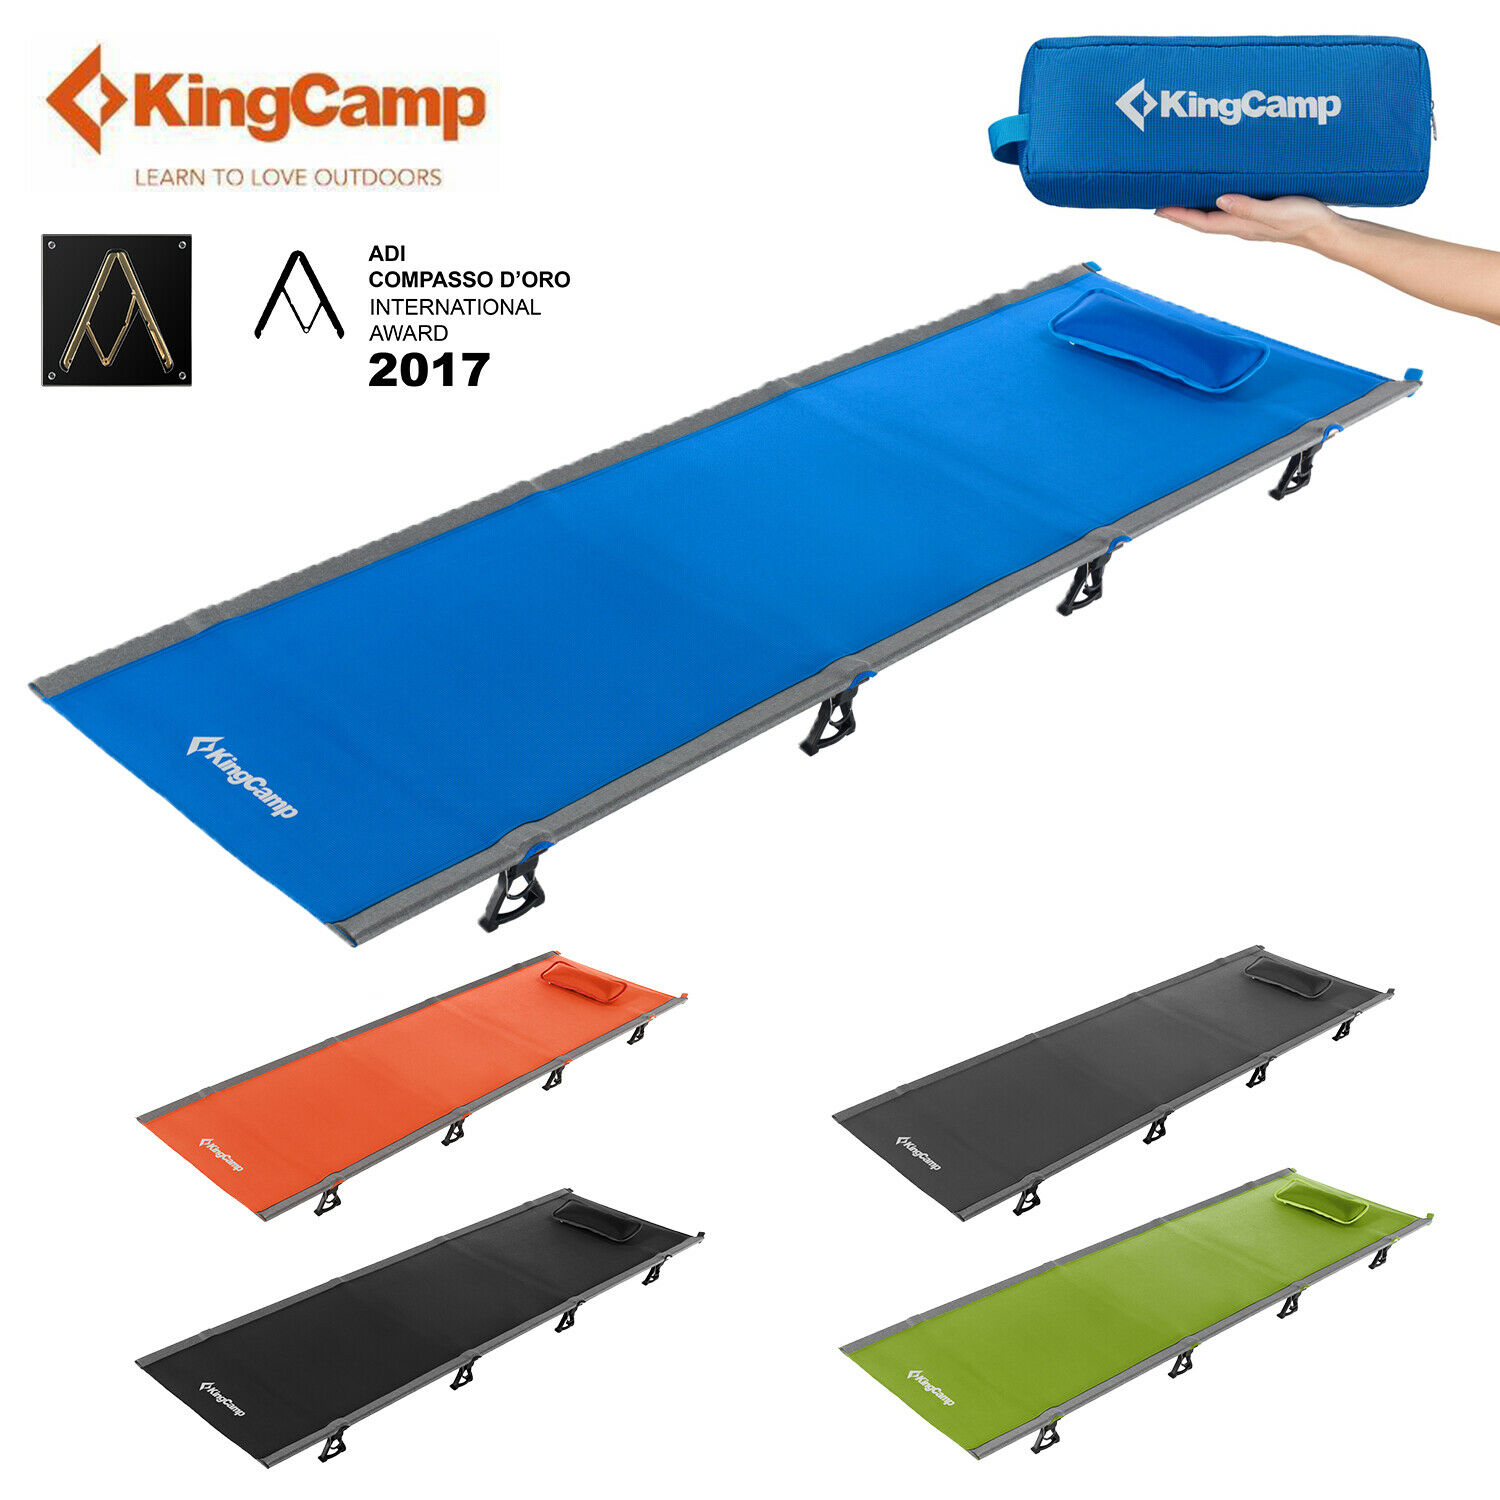 KingCamp Camping Folding Bed Sleeping Cot Ultralight Military Portable  Sleepover  great offers